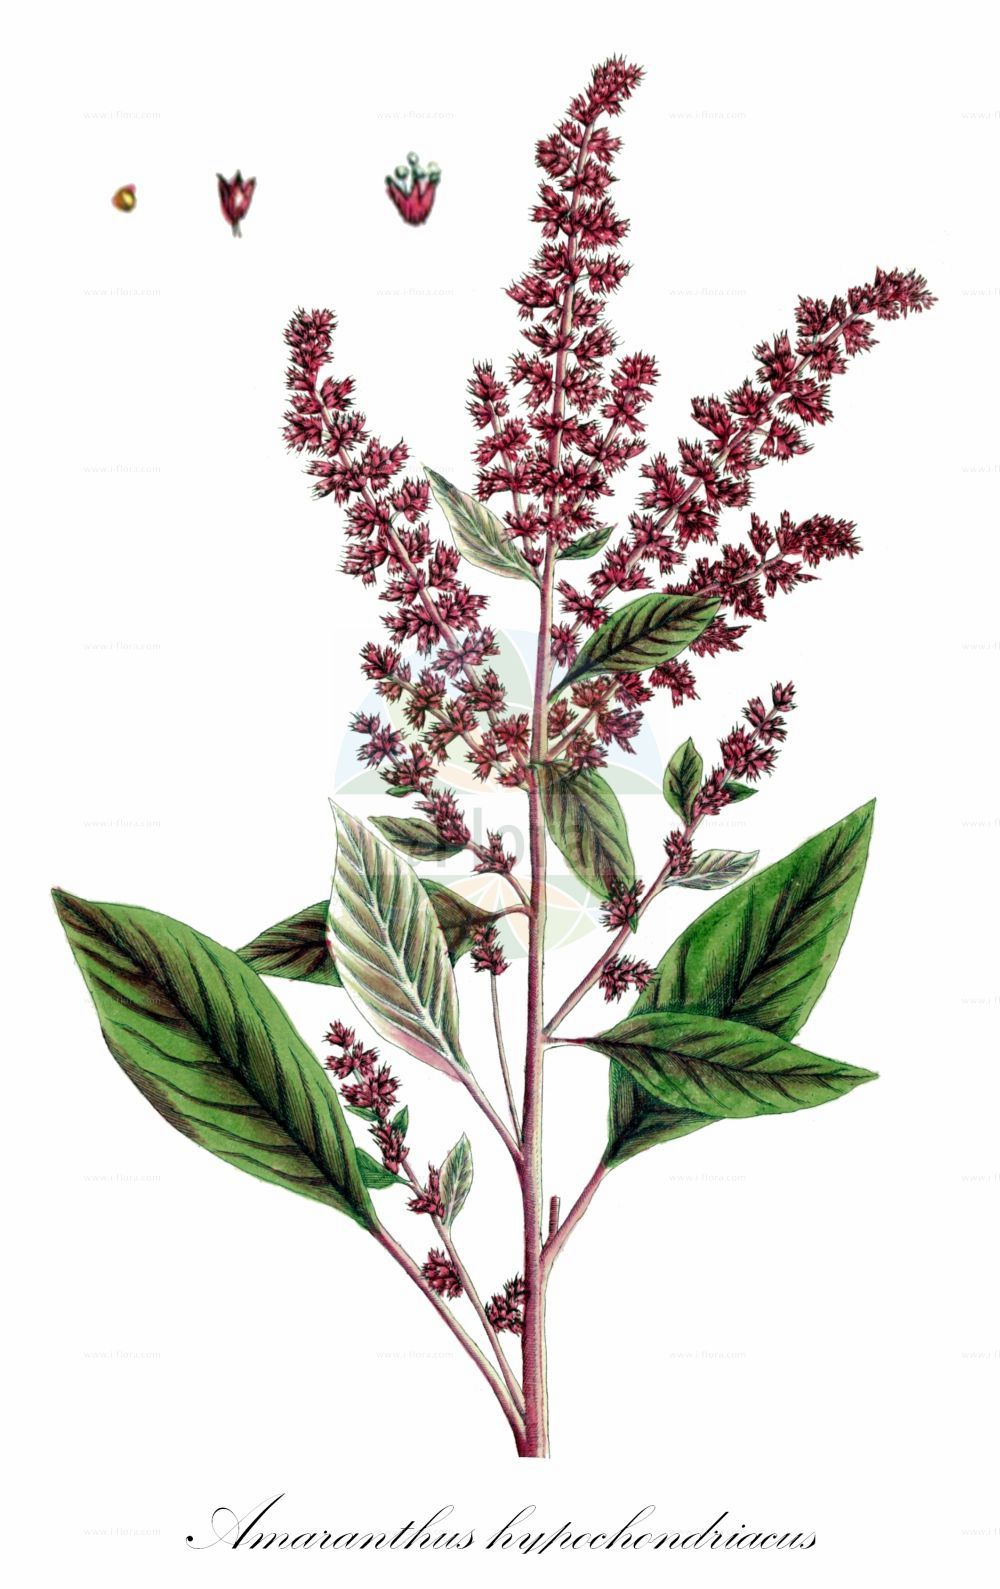 Historische Abbildung von Amaranthus hypochondriacus. Das Bild zeigt Blatt, Bluete, Frucht und Same. ---- Historical Drawing of Amaranthus hypochondriacus.The image is showing leaf, flower, fruit and seed.(Amaranthus hypochondriacus,Amaranthus,Fuchsschwanz,Pigweed,Amaranthaceae,Fuchsschwanzgewaechse,Pigweed family,Blatt,Bluete,Frucht,Same,leaf,flower,fruit,seed,Blackwell (1737-1739))